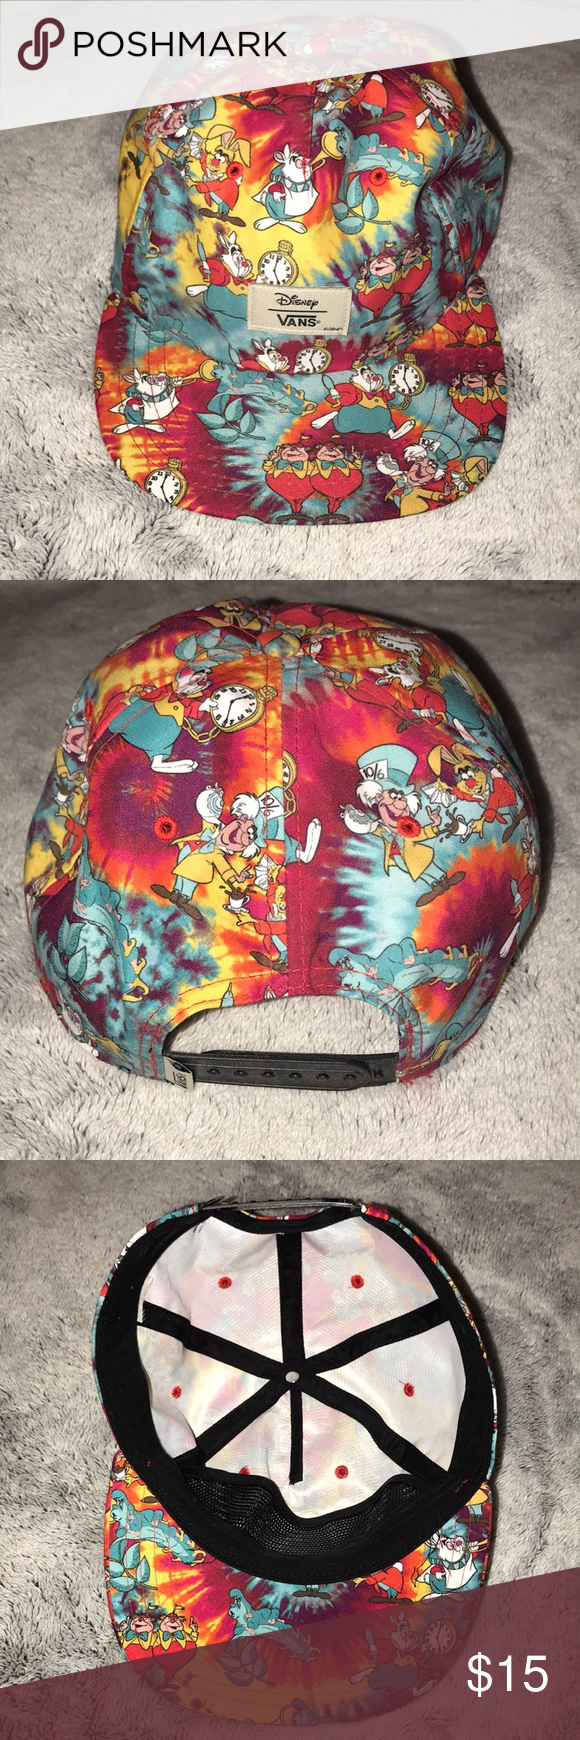 ff51a5f3c45 Vans x Disney Snapback Hat Vans   Disney collaboration Snapback Hat Alice  in Wonderland characters with tie dye Vans Accessories Hats